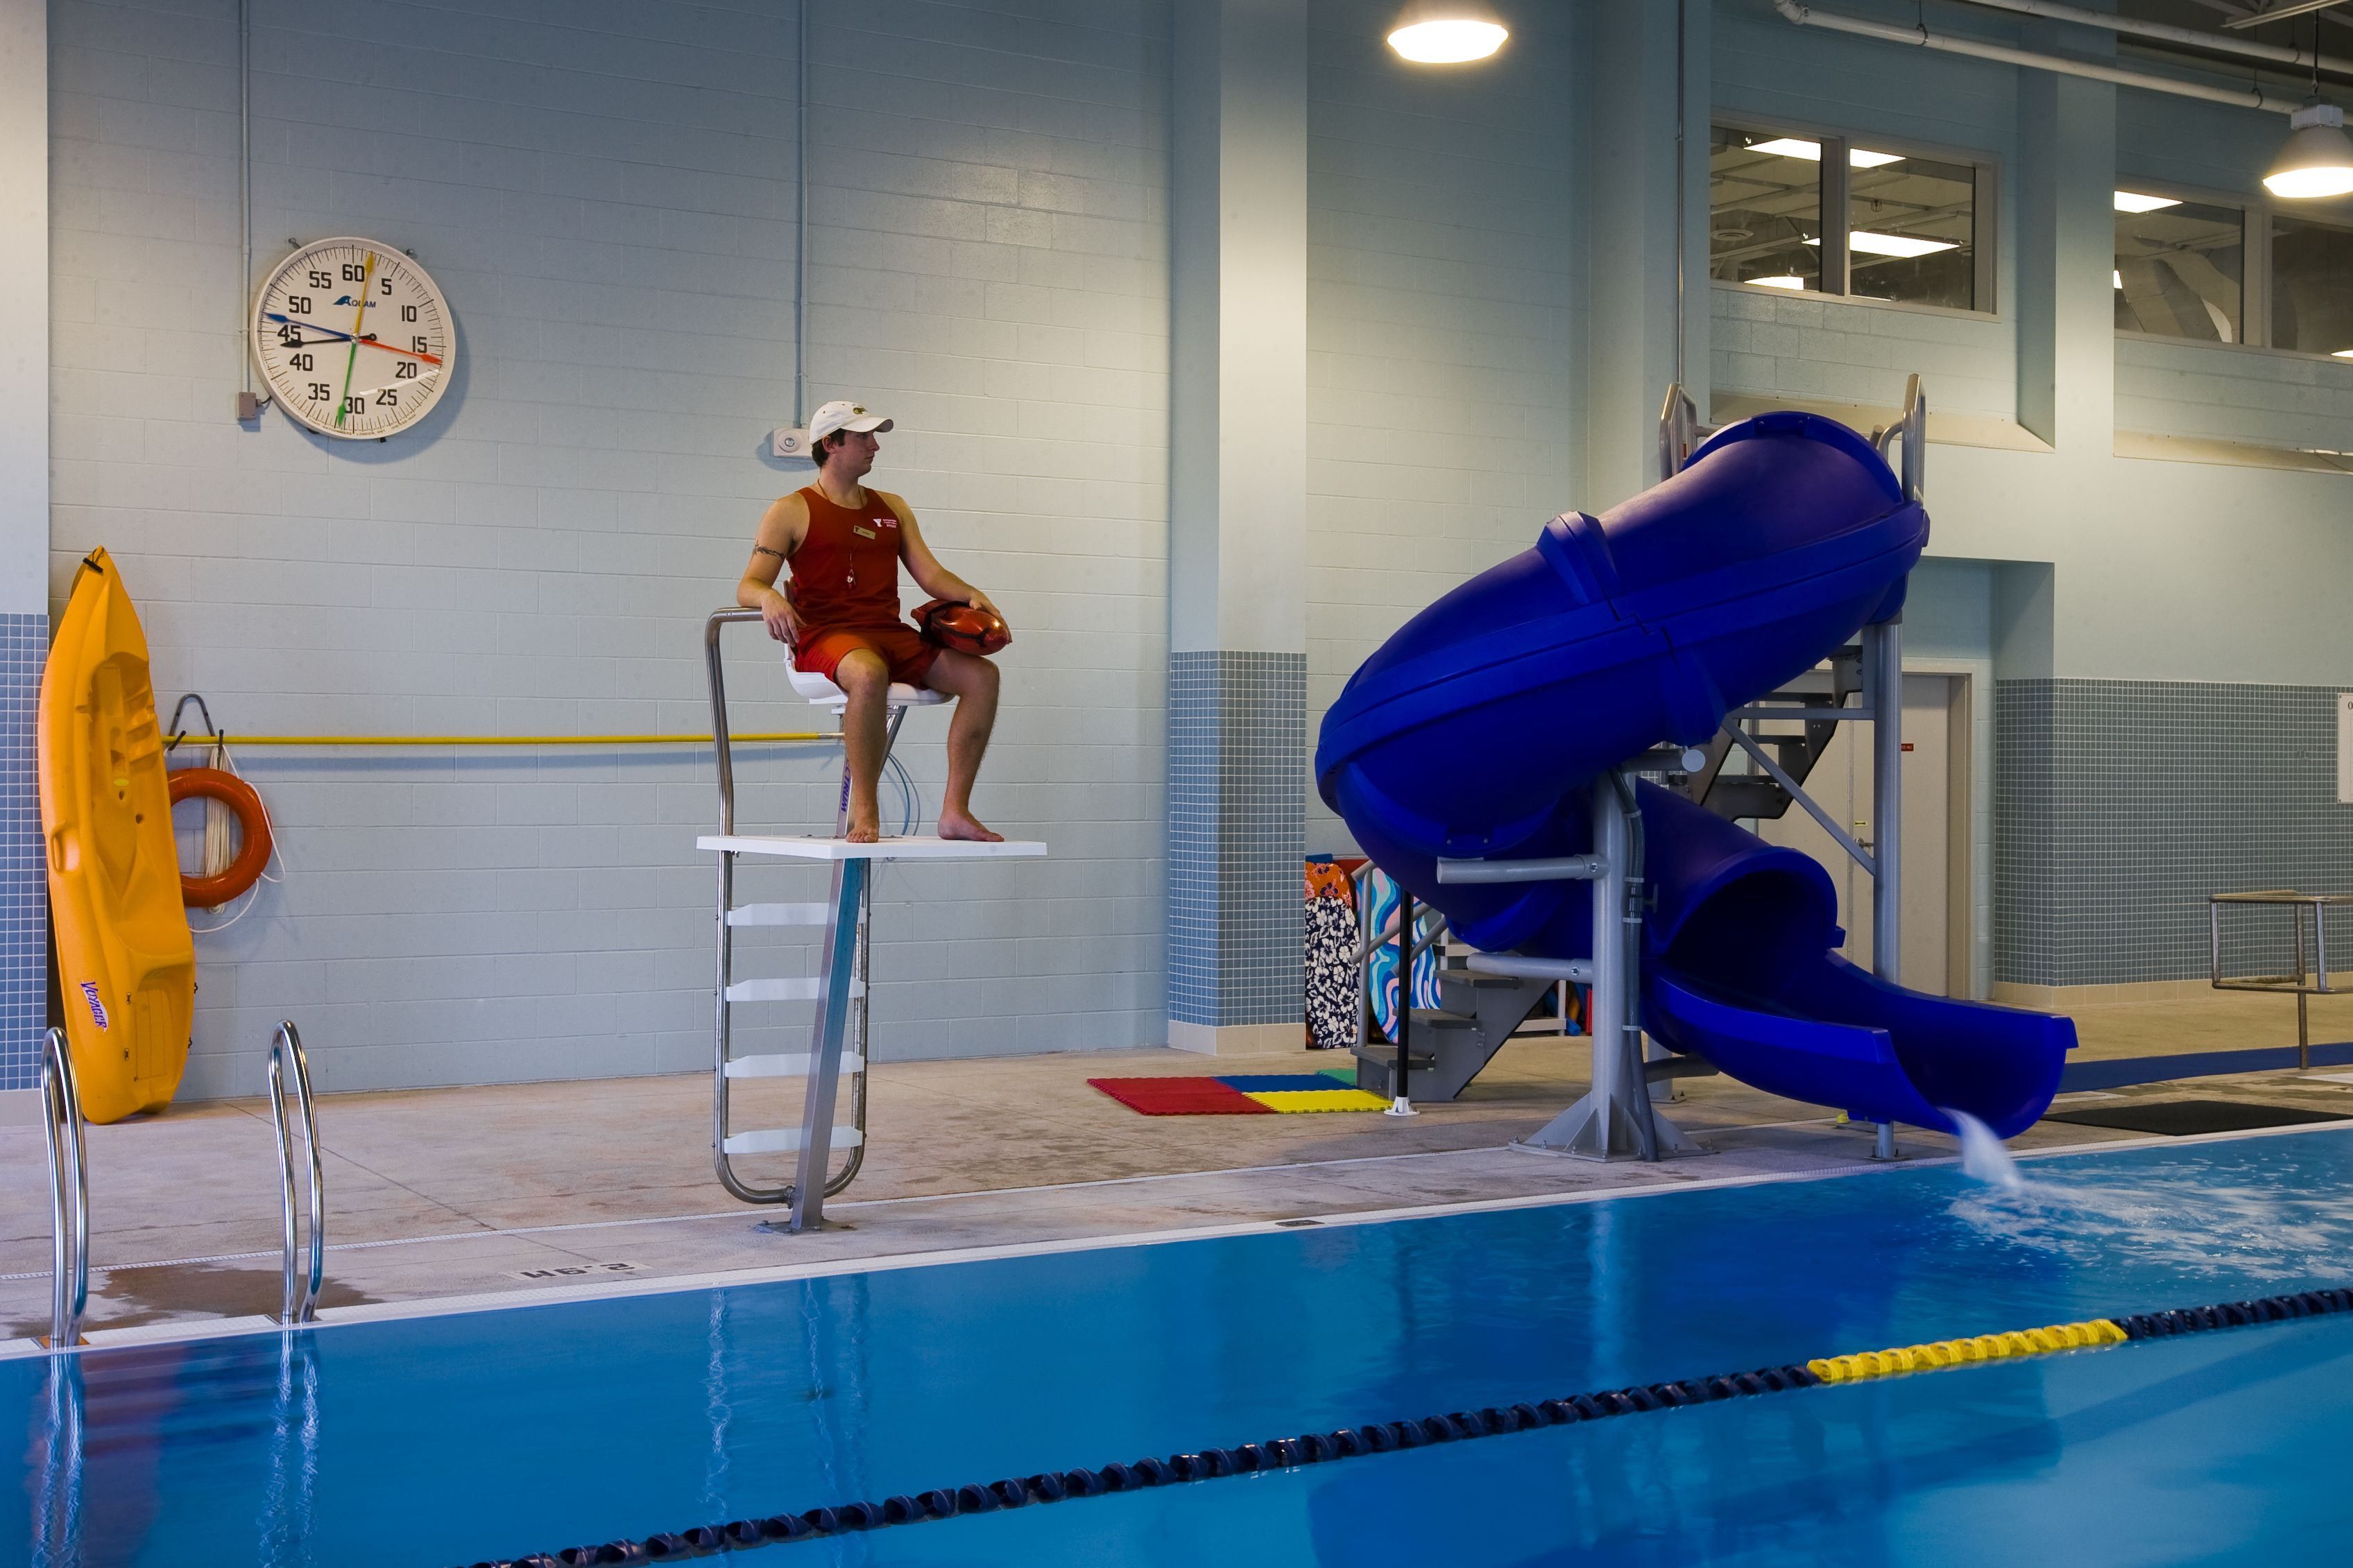 Ymca kingston pool renovation - St mary s school bexhill swimming pool ...